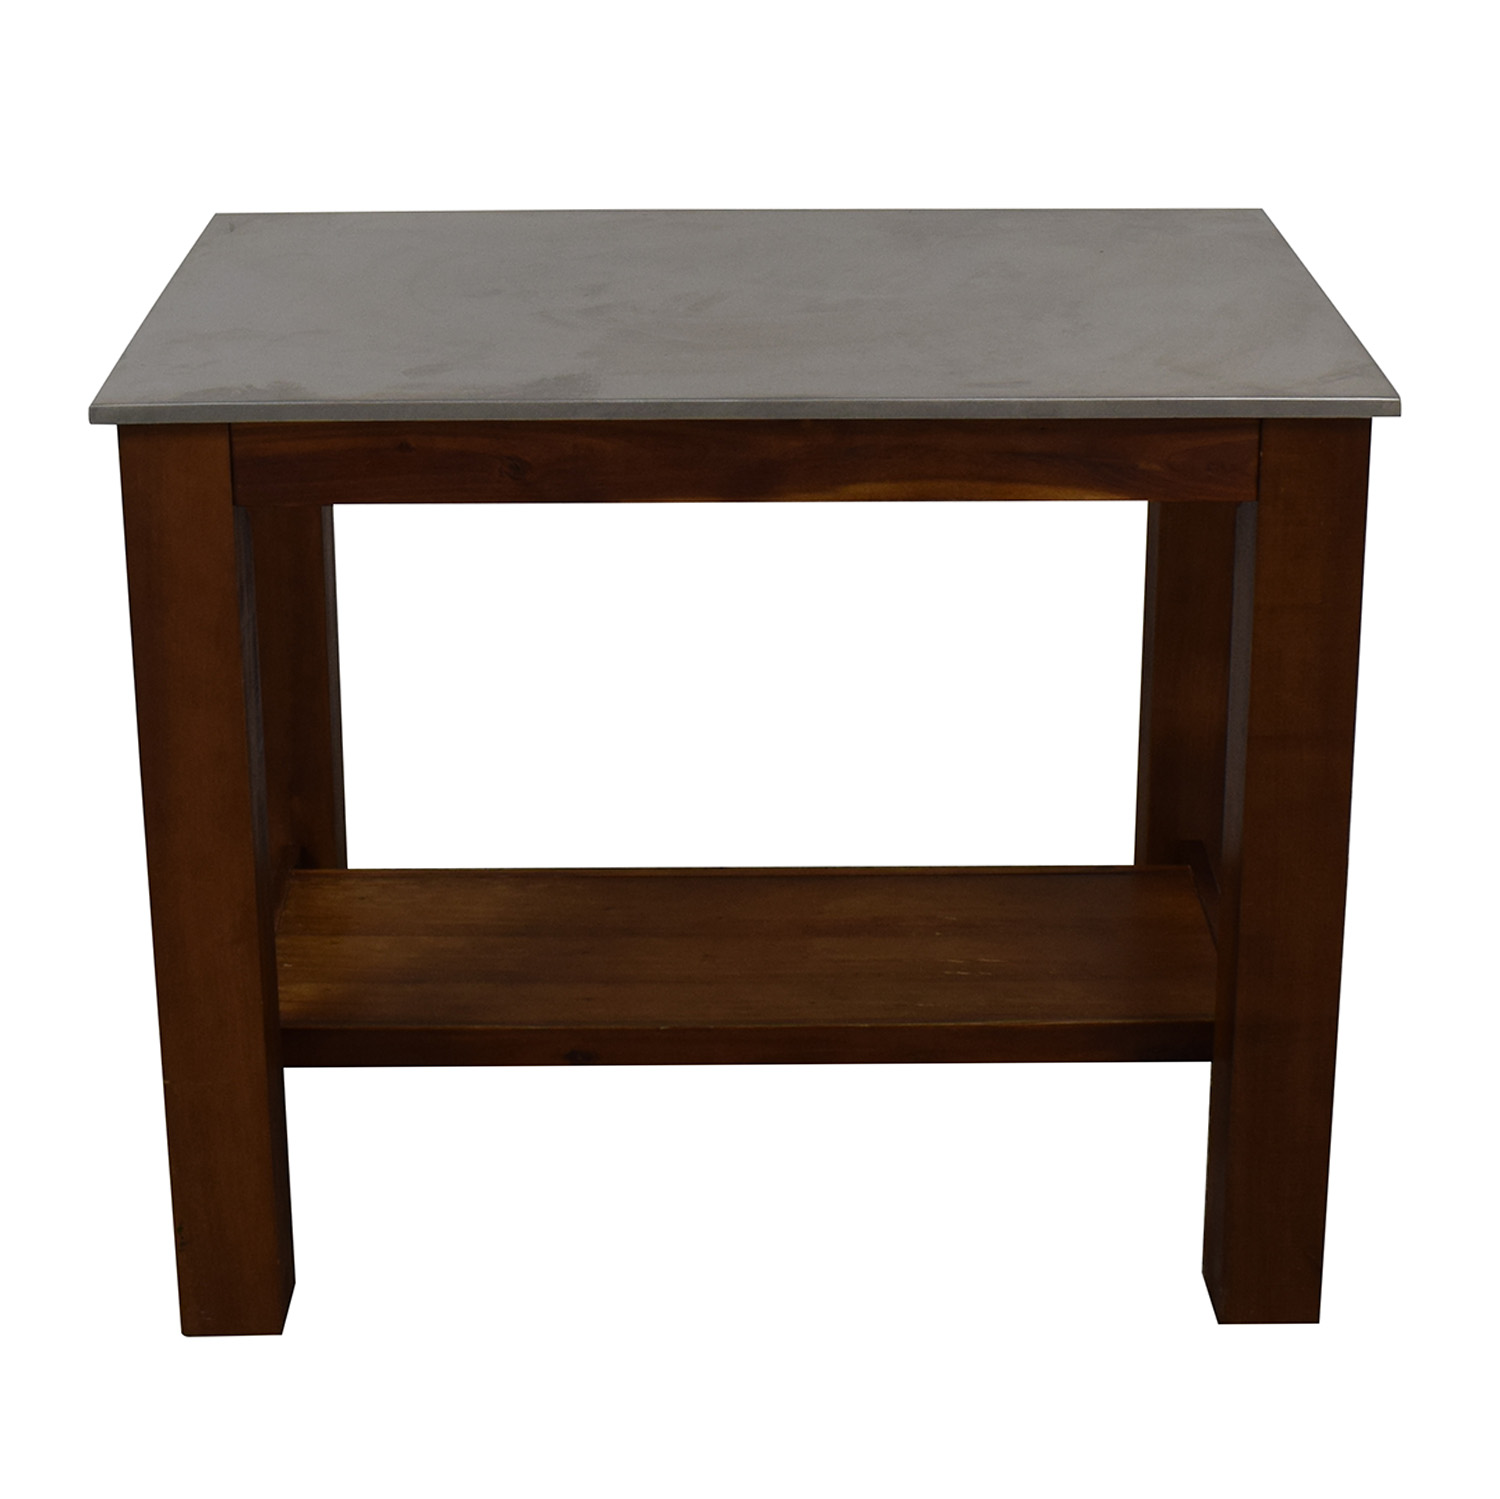 West Elm West Elm Rustic Kitchen Island for sale